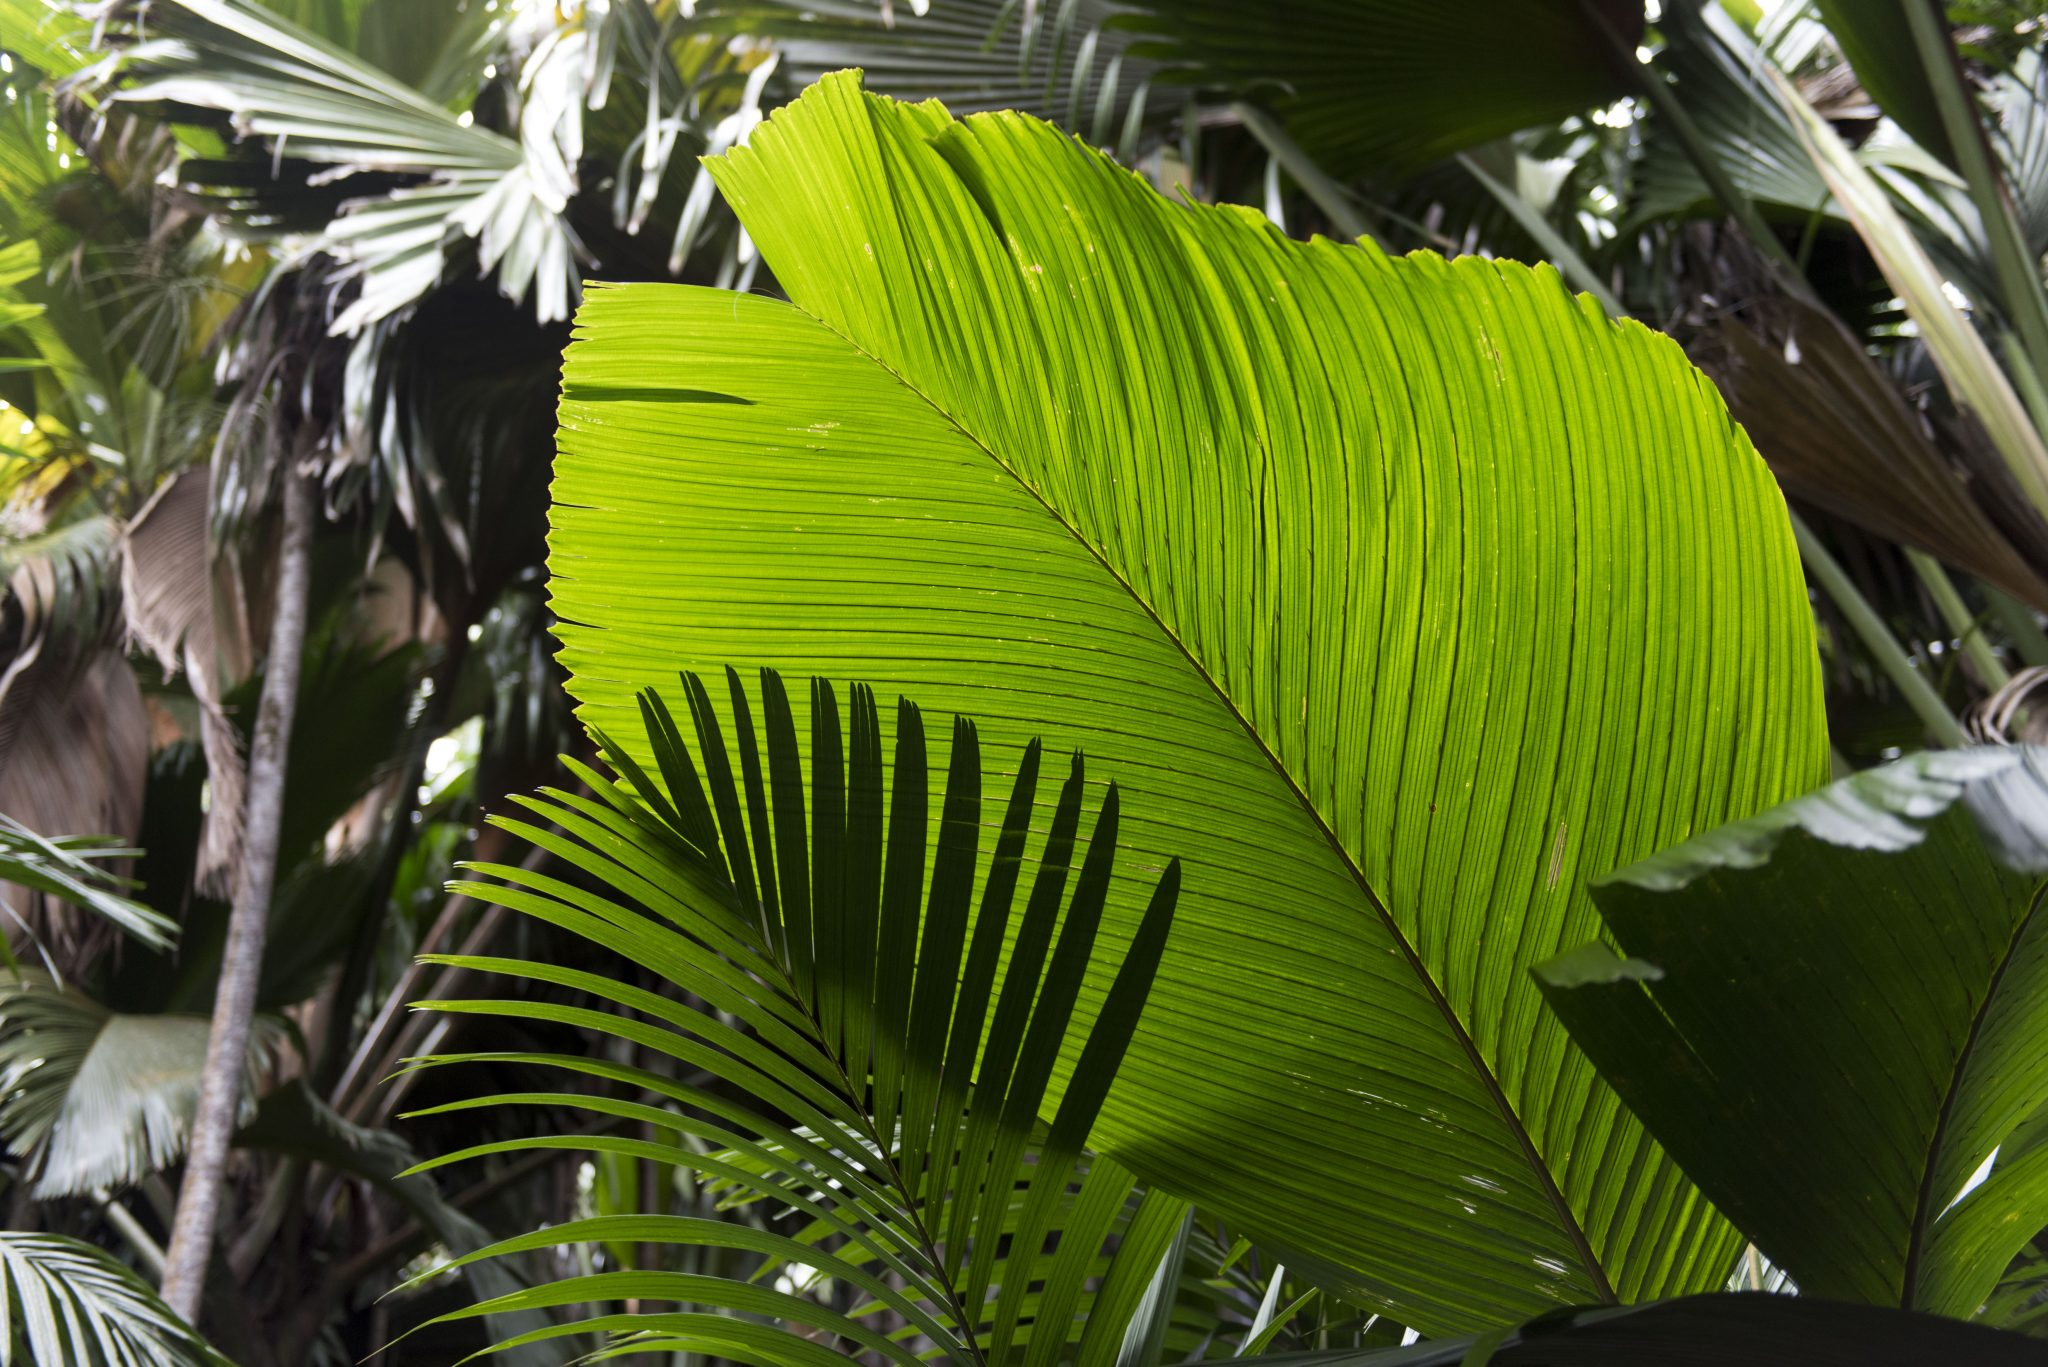 Photo: Detail of palm leaves in the Primeval Palm forest during the trip of Secretary-General Ban Ki-moon to Praslin Island to visit the Vallée de Mai Nature Reserve, a UNESCO World Heritage Site.